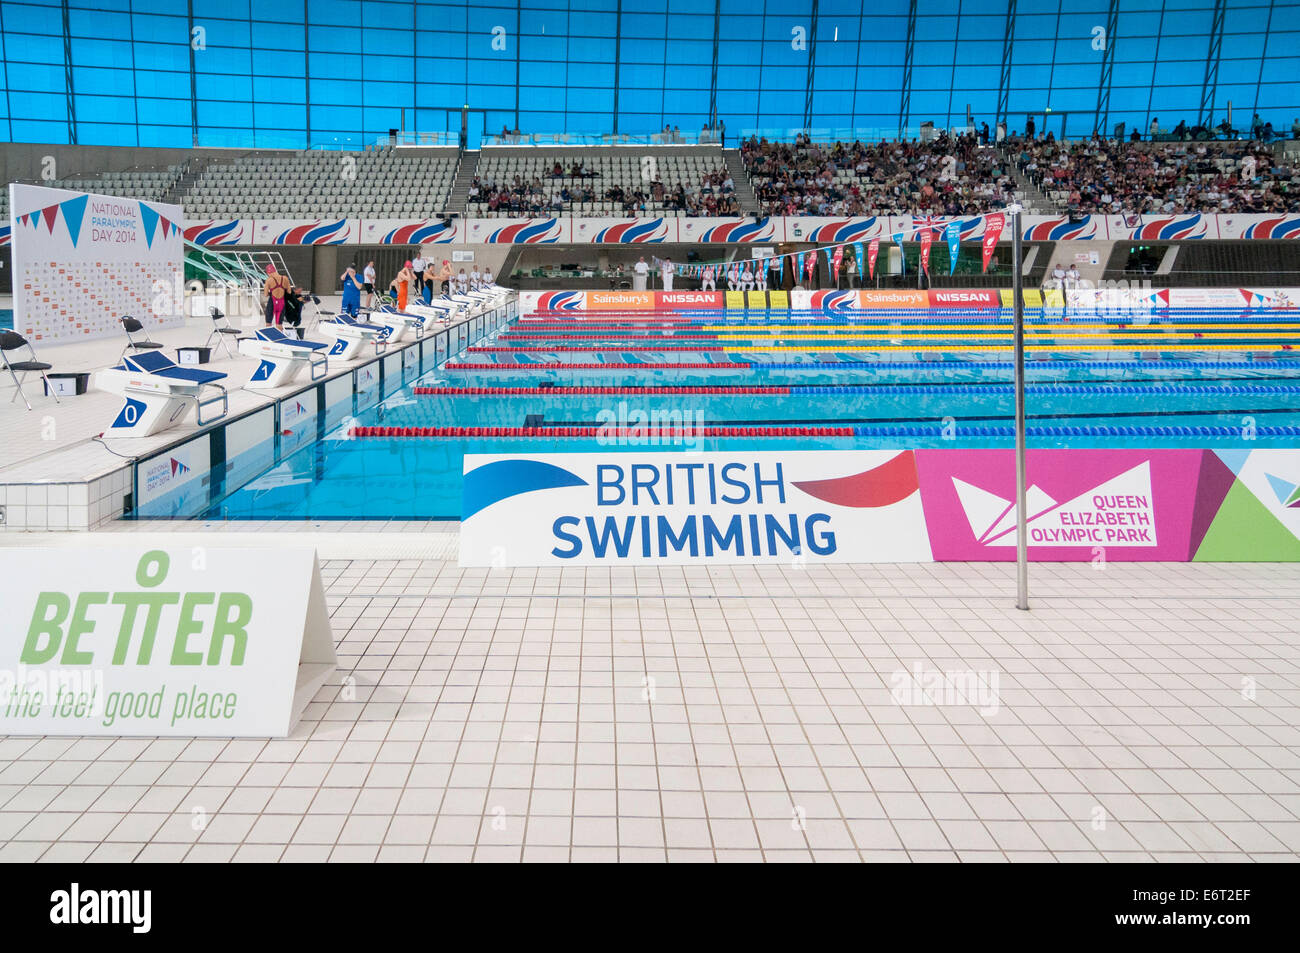 The queen elizabeth olympic park 2014 stock photos the - Queen elizabeth olympic park swimming pool ...